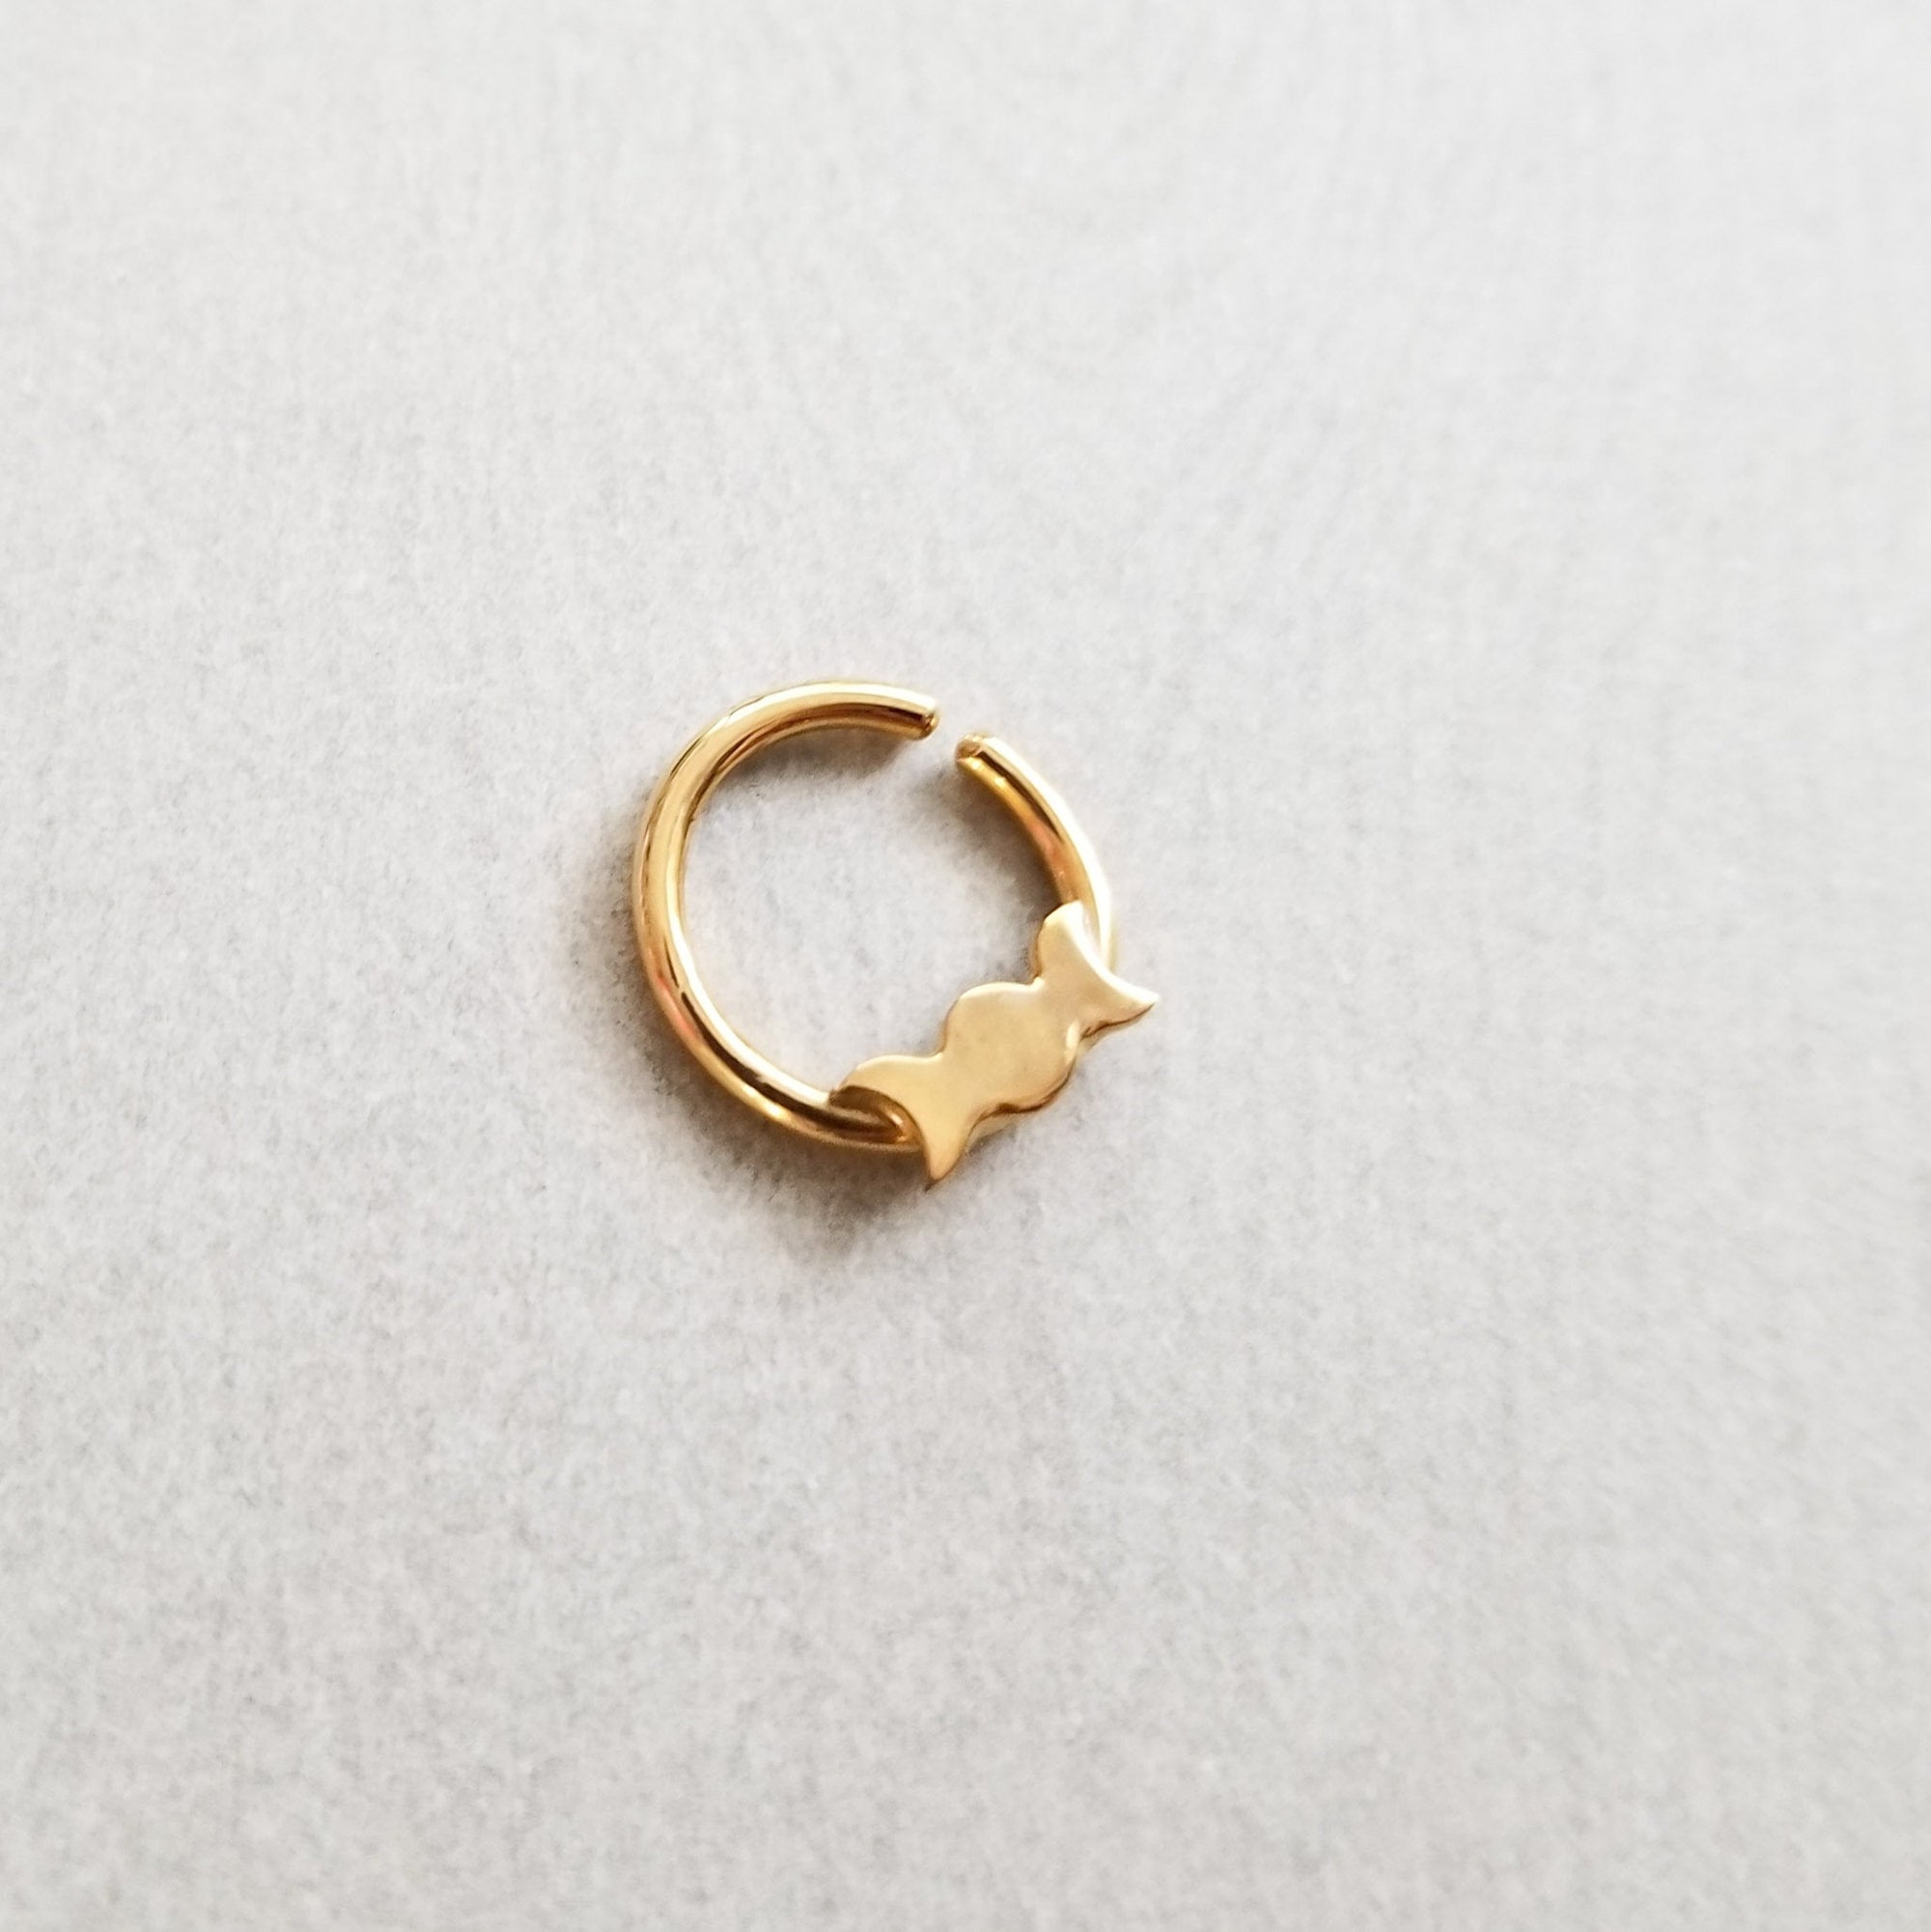 Yellow Gold Moon Nose Ring 14K - Inchoo Bijoux